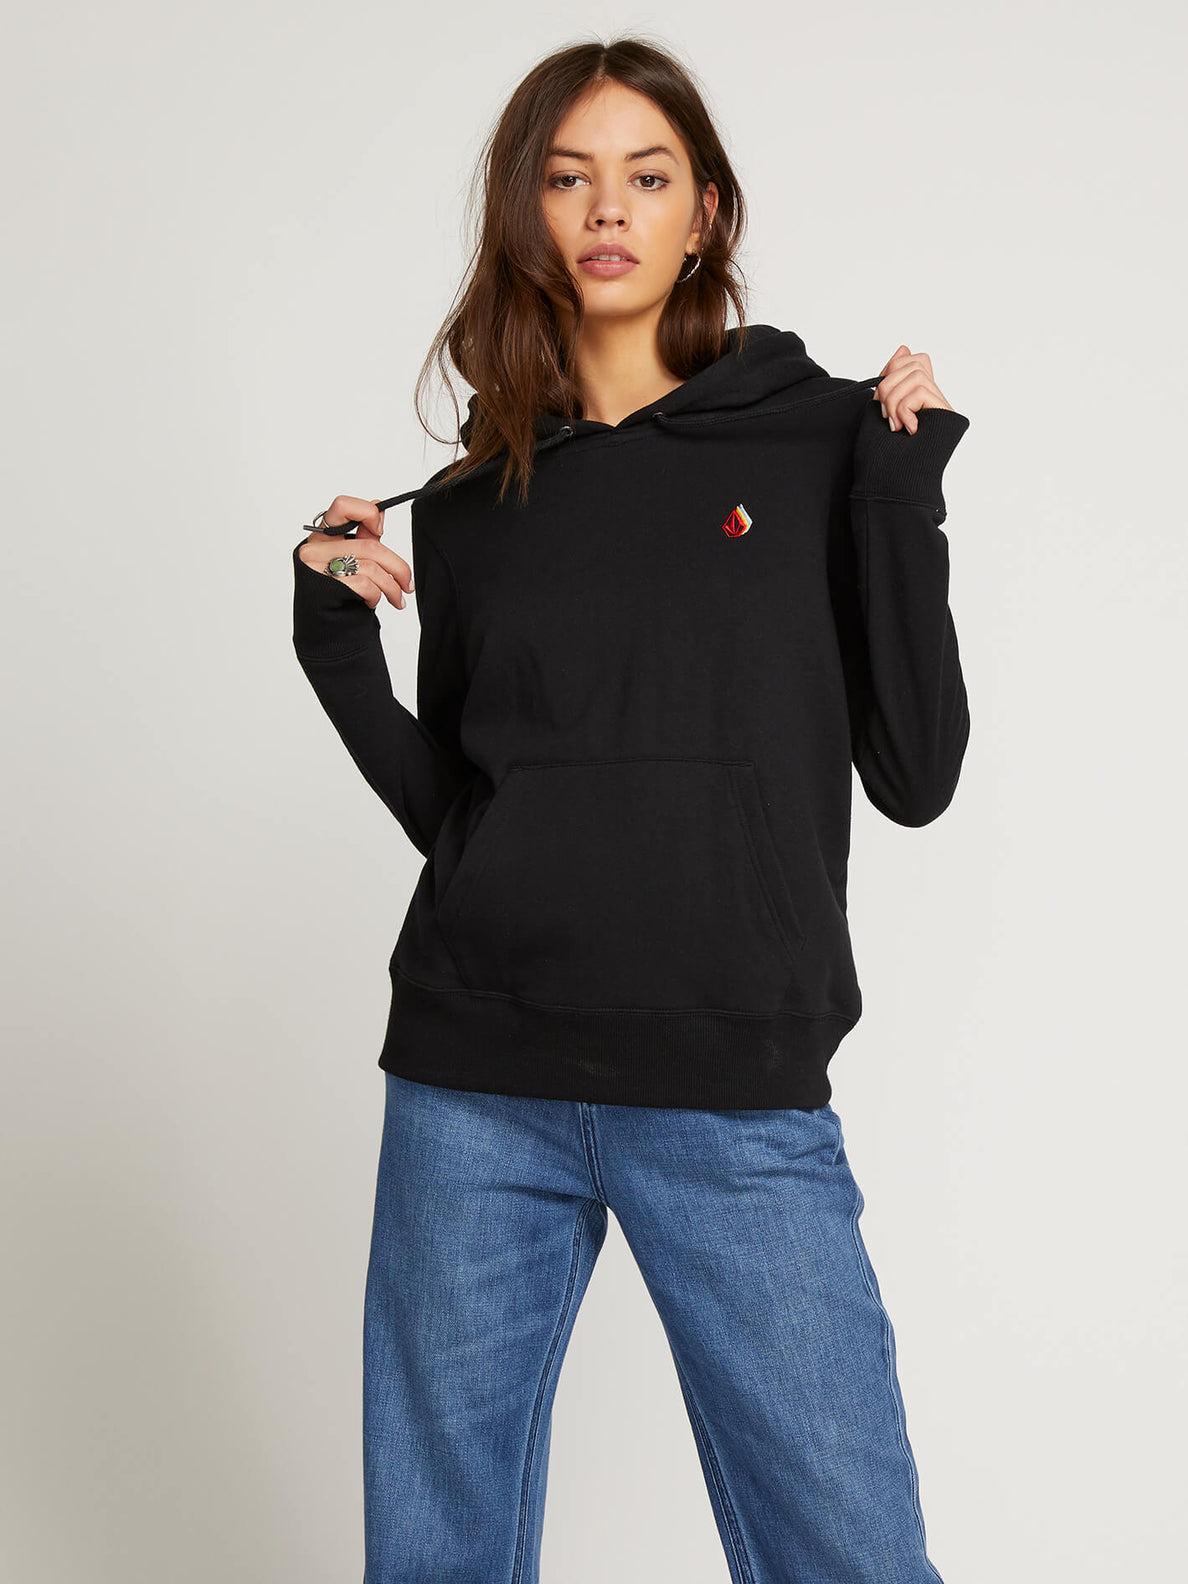 Vol Stone Hoodie In Black, Front View